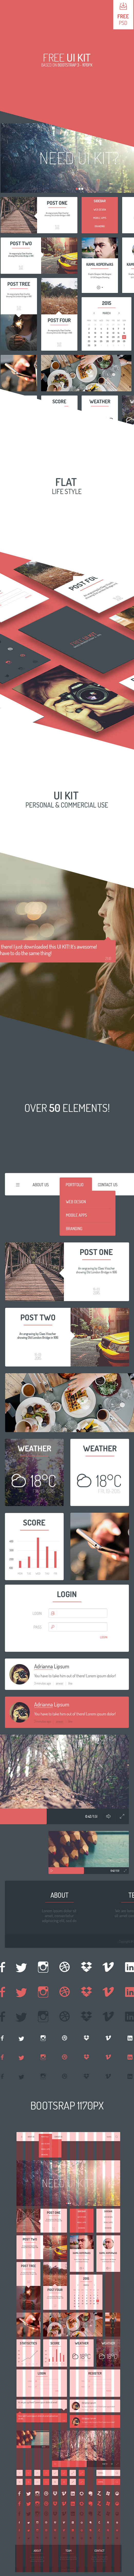 free ui kit UI kit free download flat Life Style red free ui flat ui Interface Website bootstrap bootstrap 3 bootstrap 1170